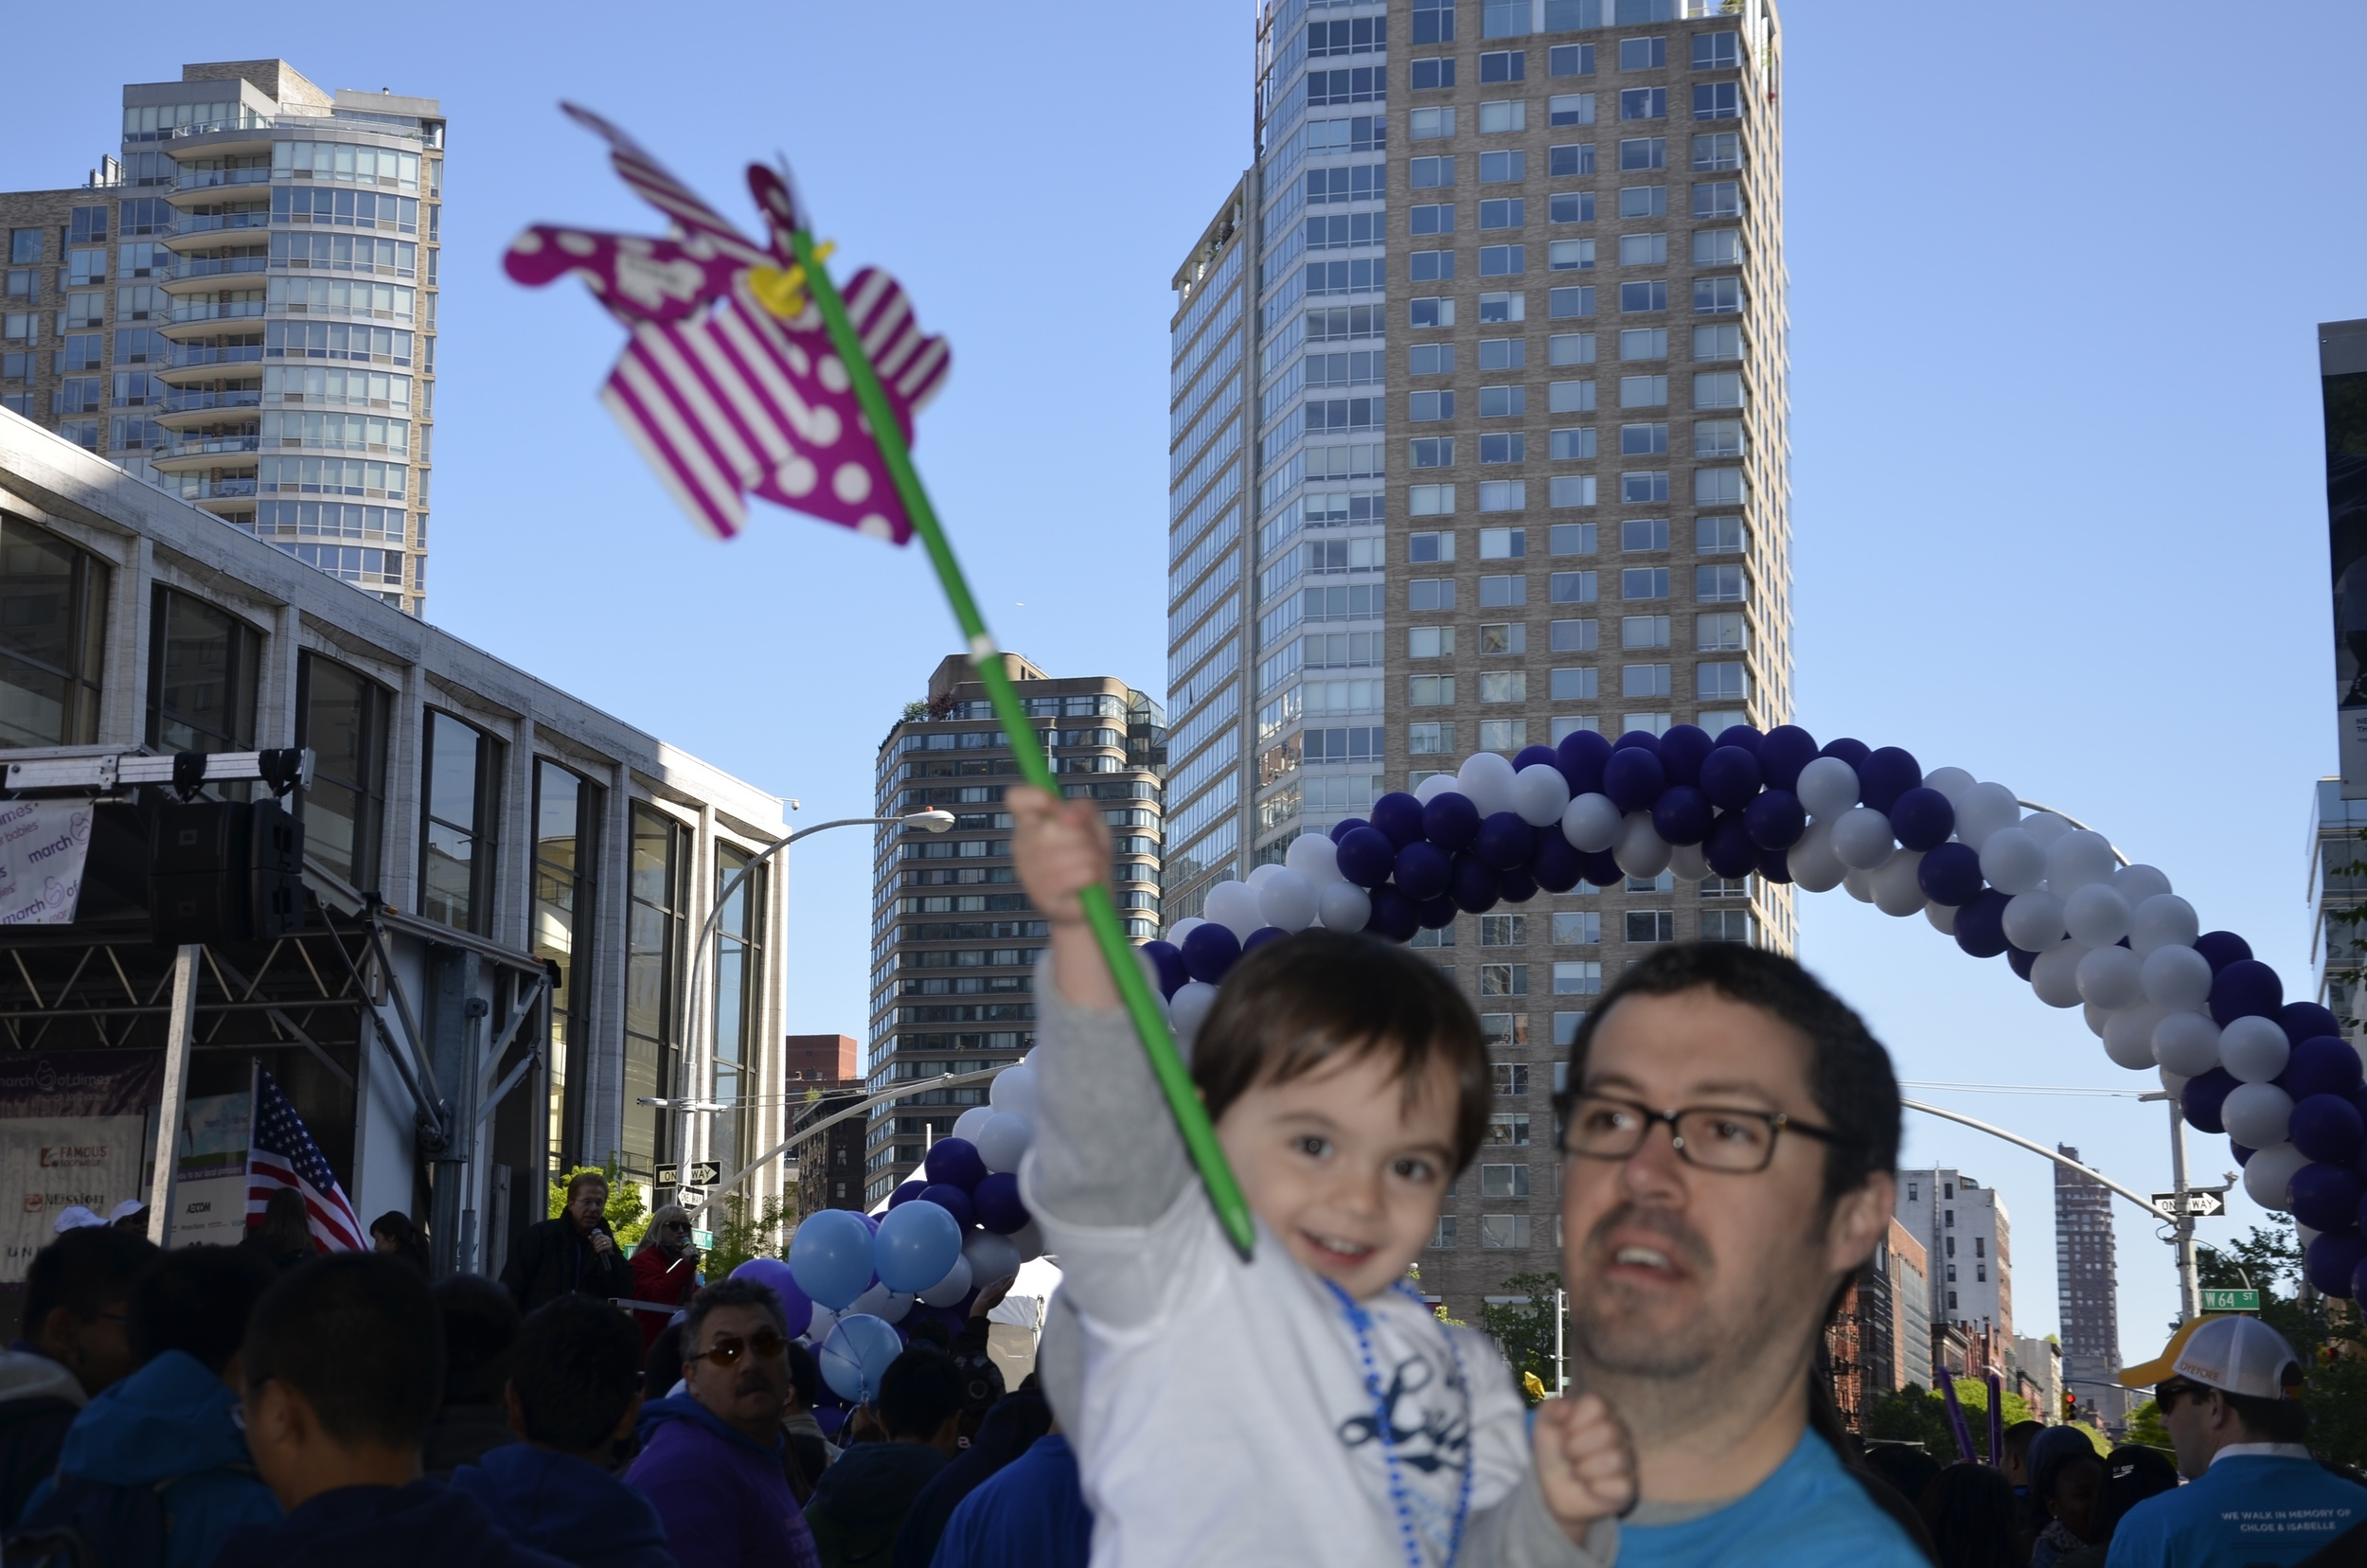 julian--josh-levine-at-the-starting-line-at-2012-march-for-babies-walk_8540259066_o.jpg